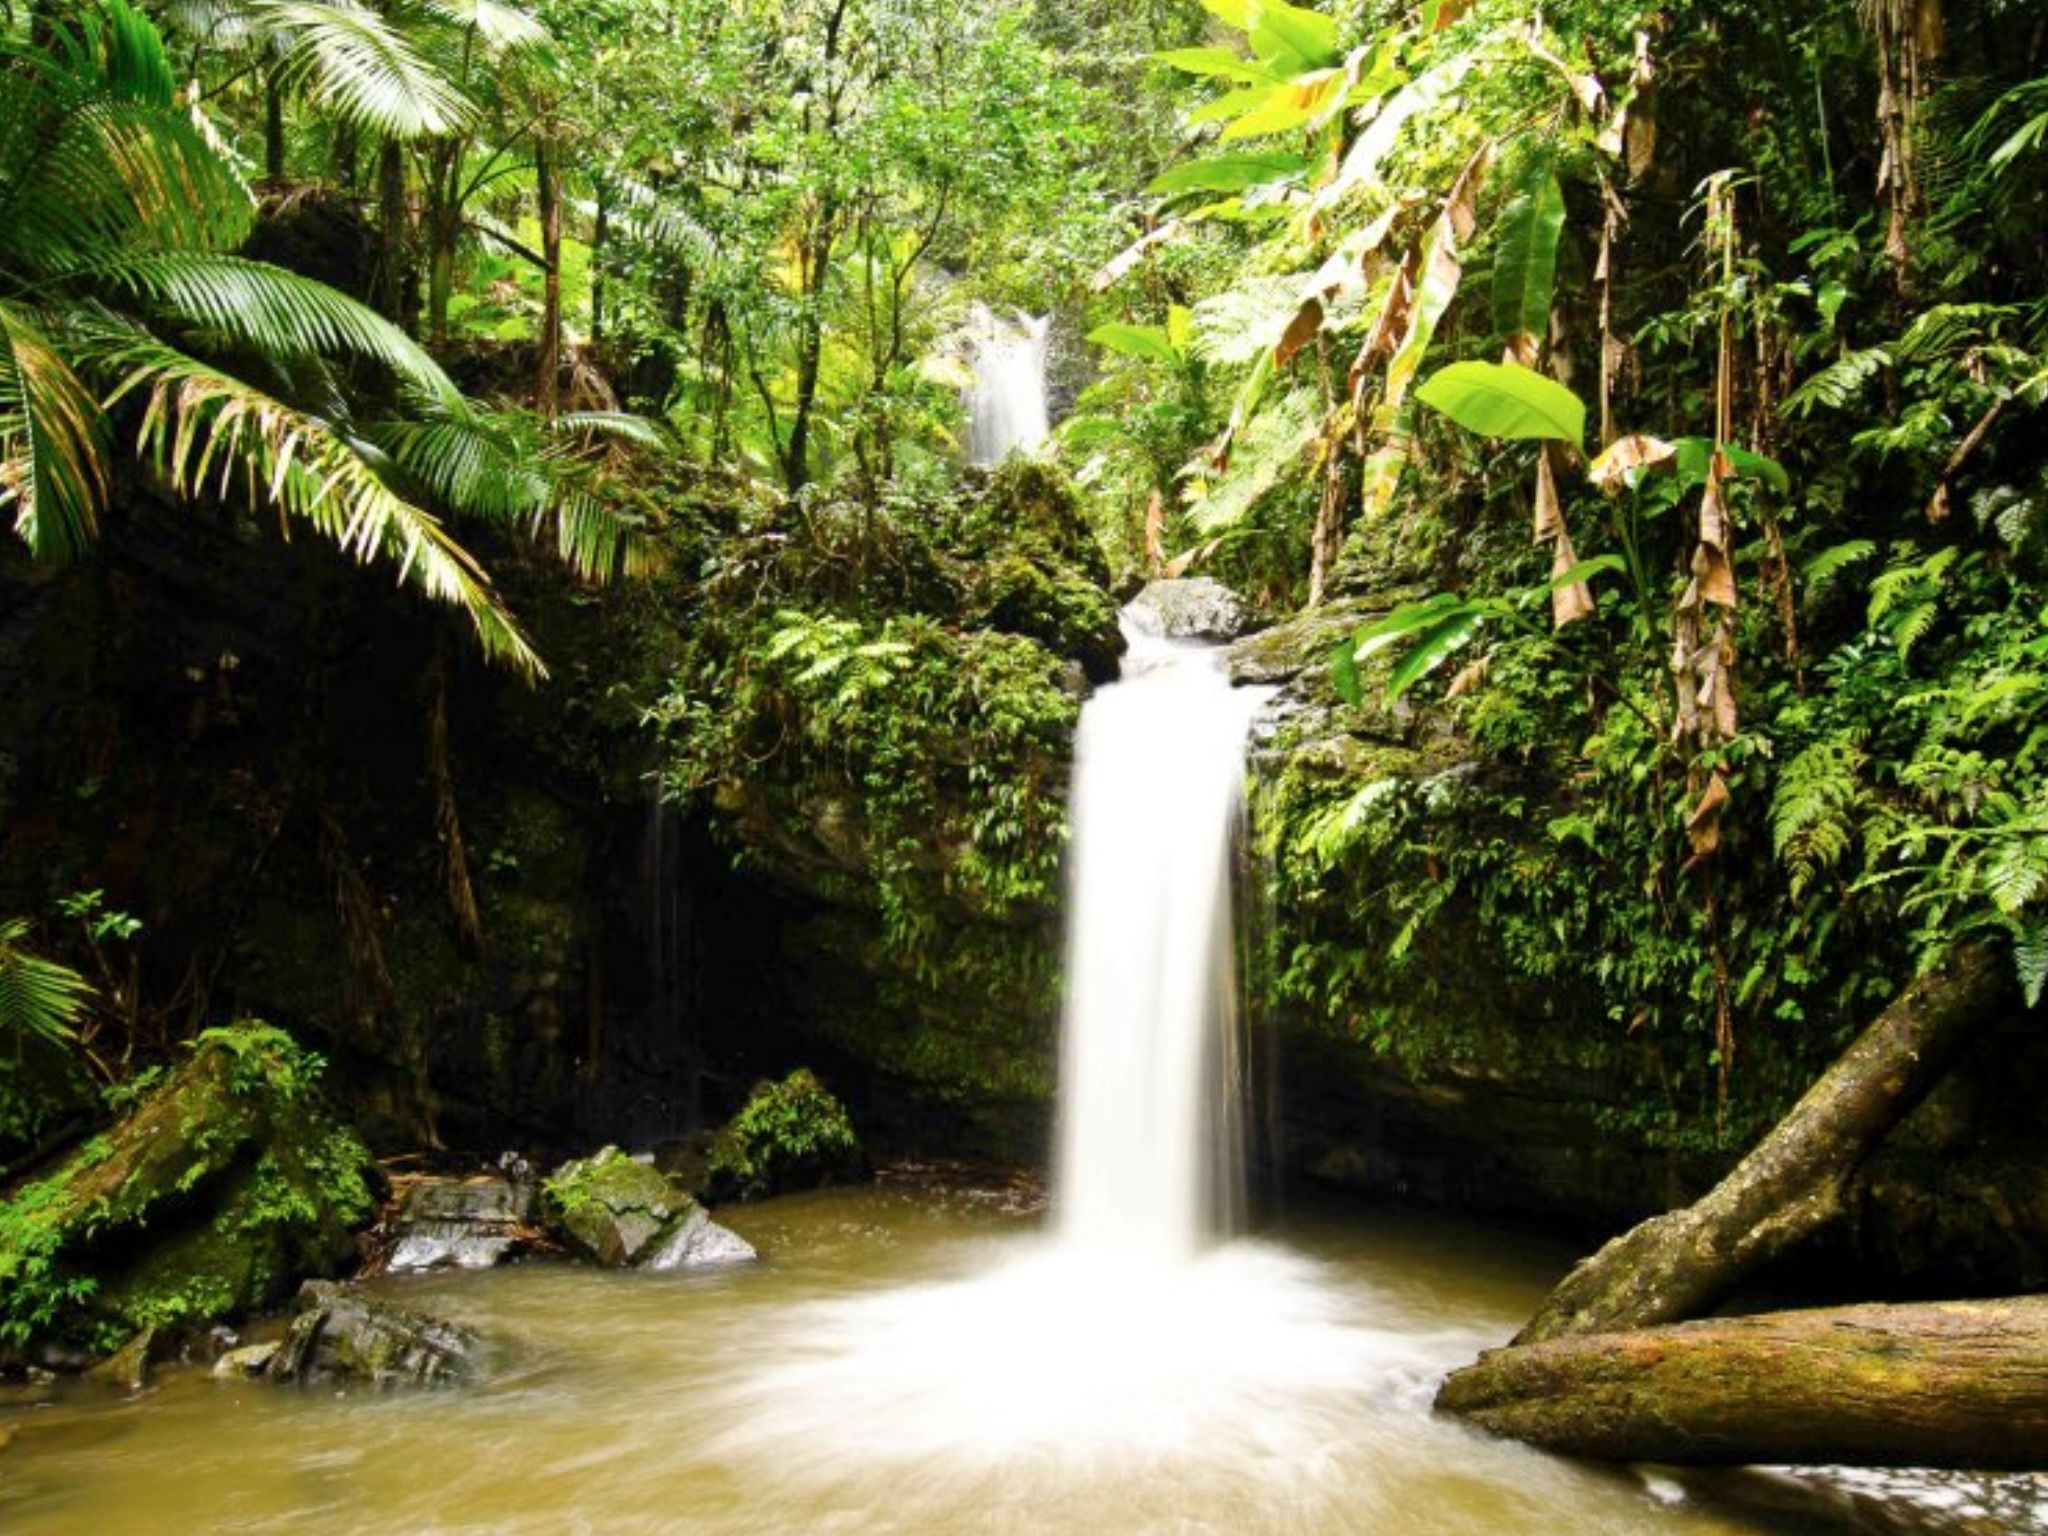 El Yunque Rainforest Guided Hiking with Waterfall Tour